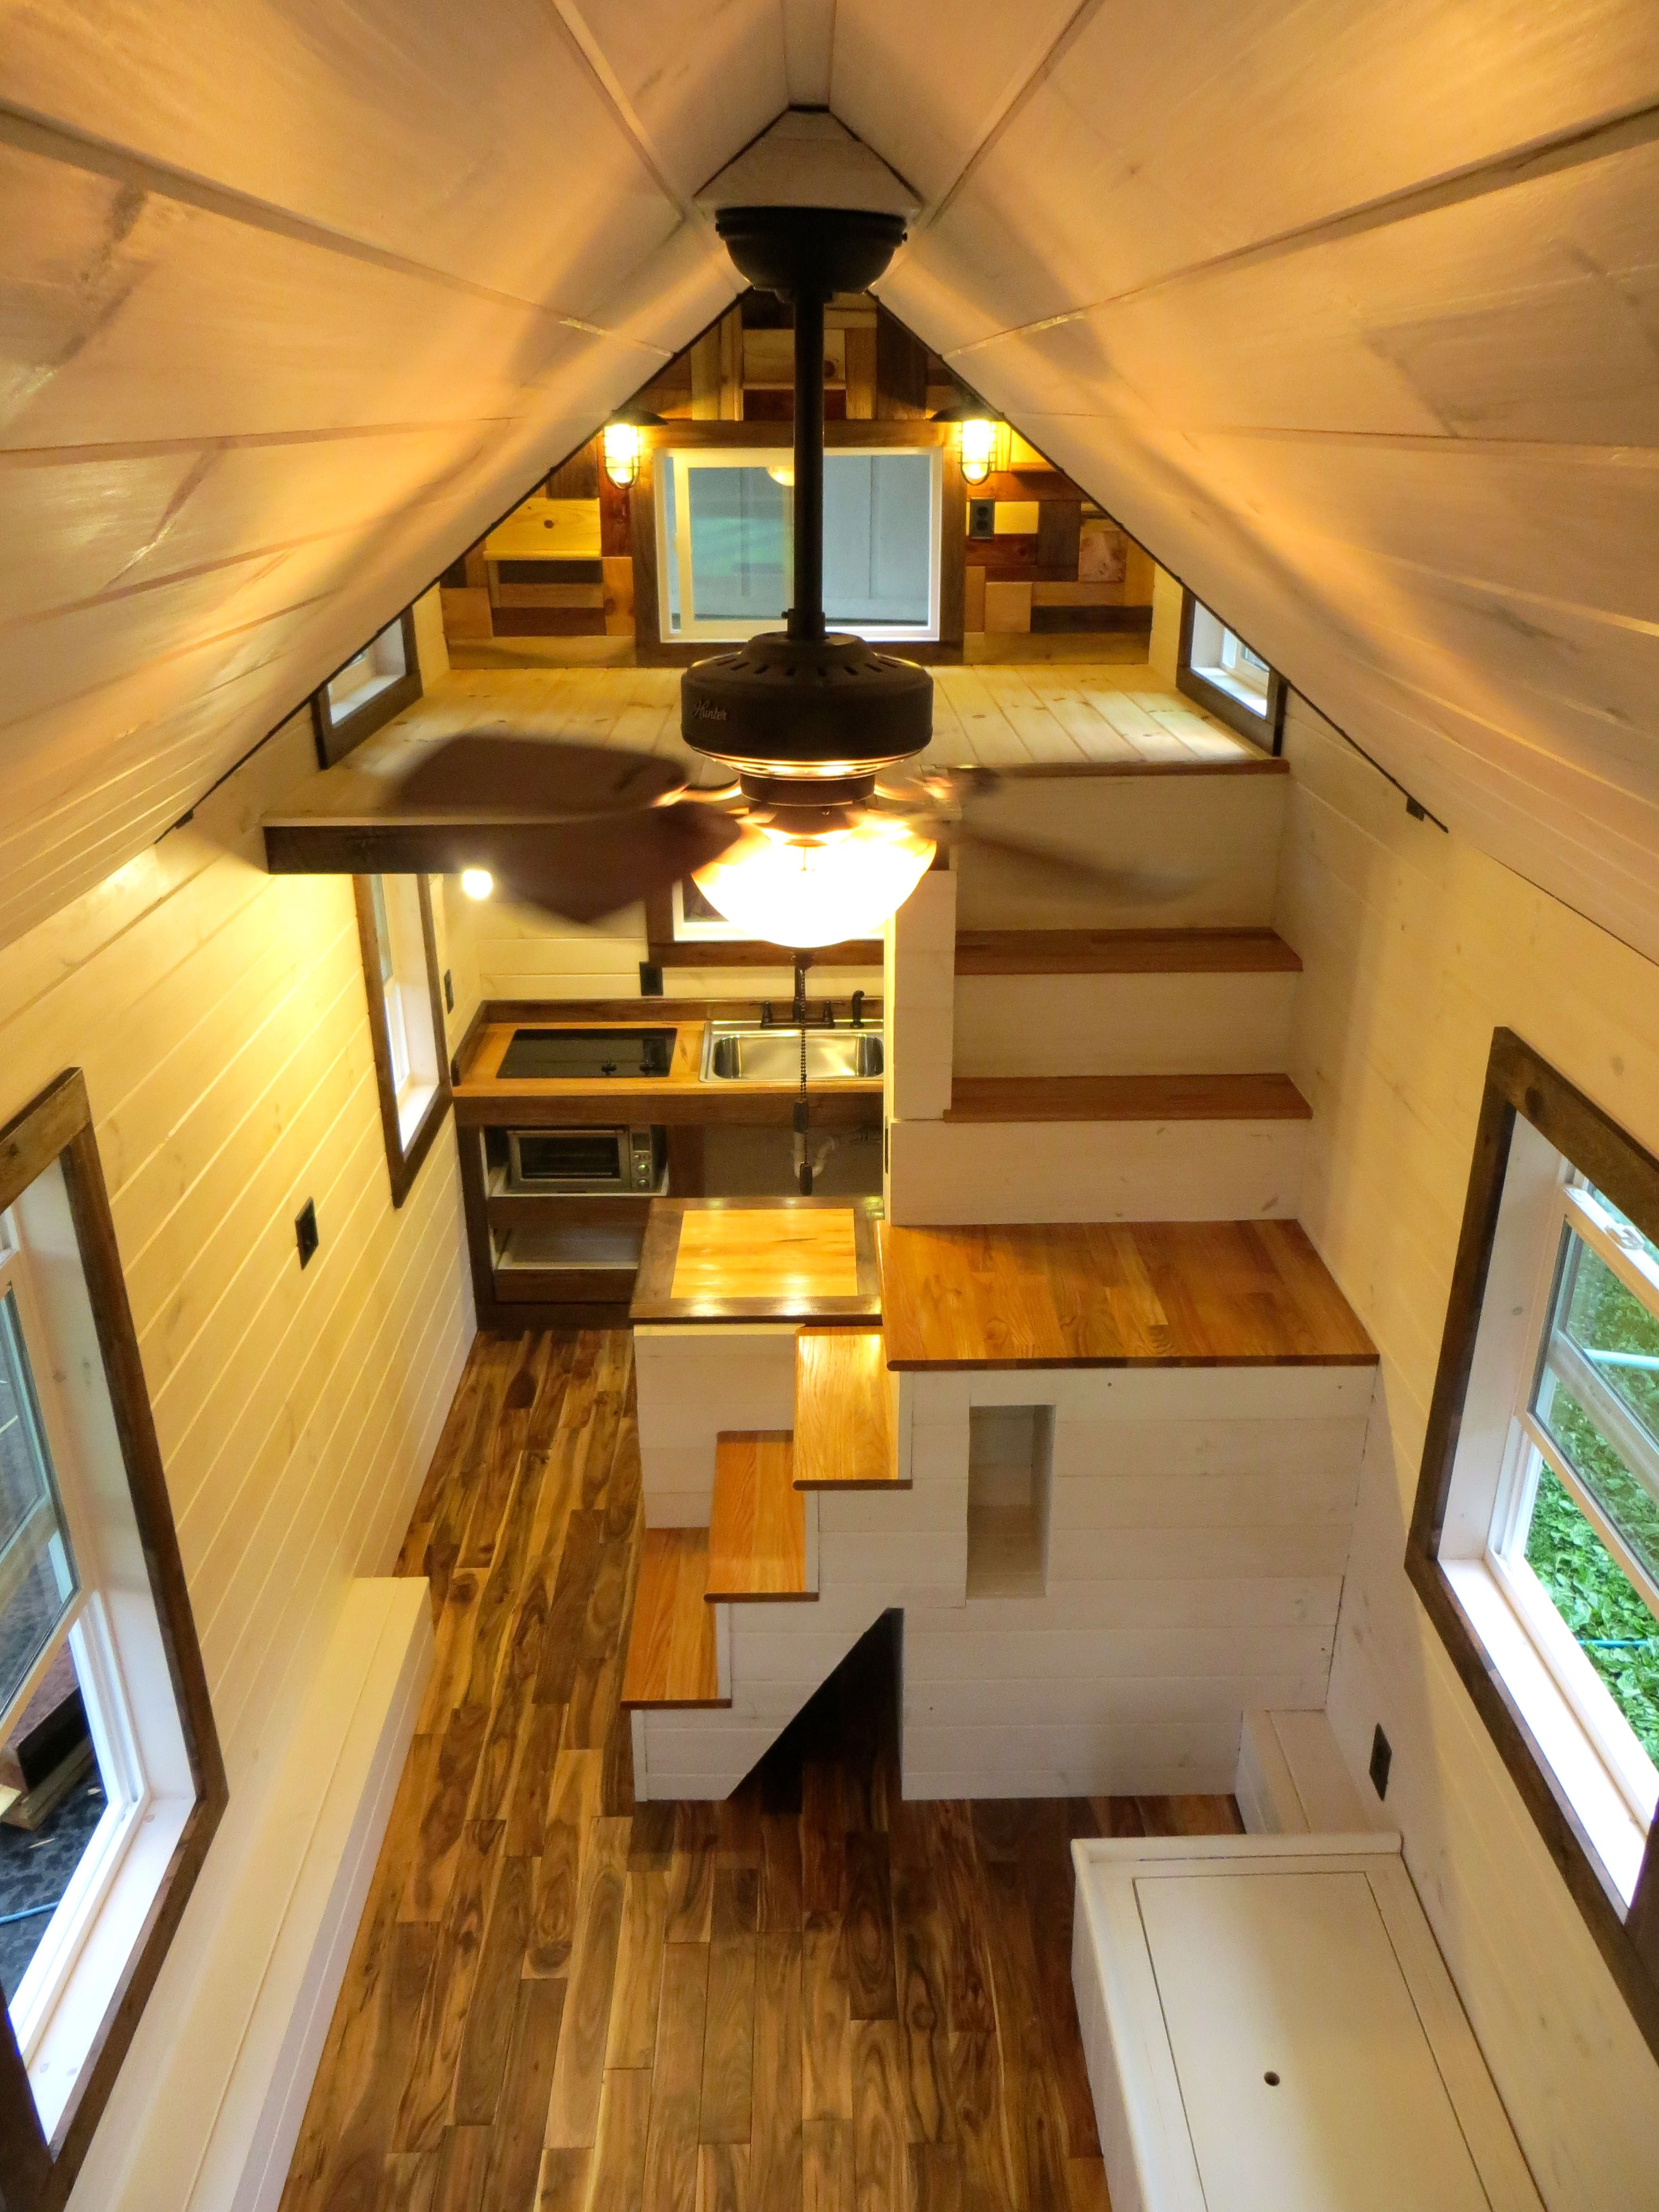 Robins Nest Tiny House On Wheels By Brevard Tiny Homes 0008 Robins Nest Tiny  House: Full Tour Photos.Now THATu0027S Maximizing Your Small Space!